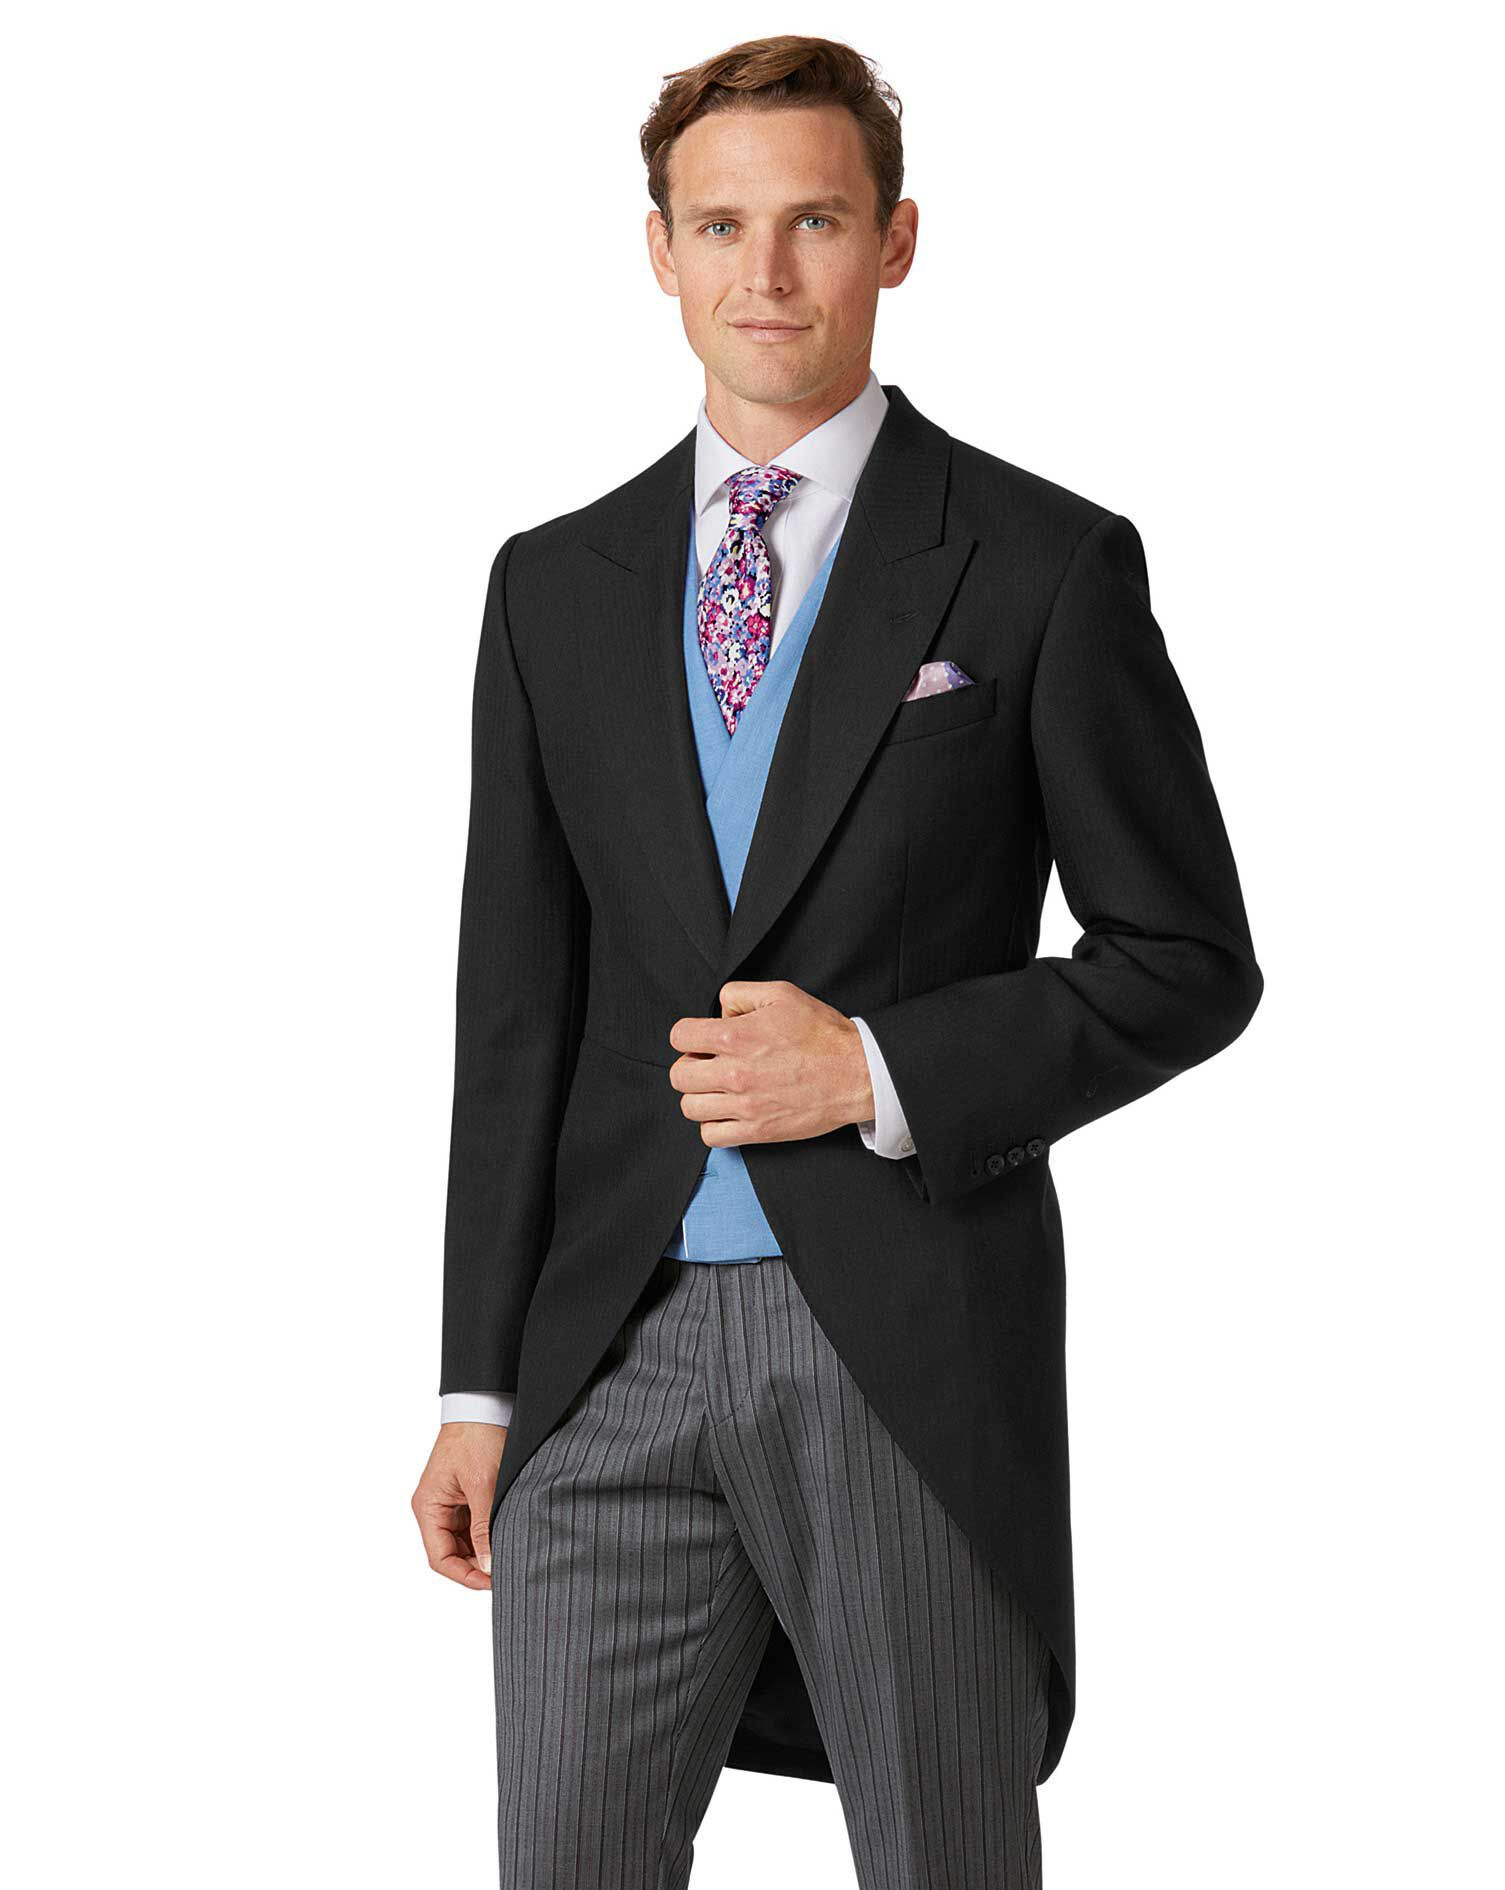 Men's Suit Jackets & Suit Coats Whether you are looking to impress the boss, or simply want to look good at a family celebration, Belk's collection of suit jackets are the ultimate styling piece. With a range of sizes, colors, lengths and brands, you'll find a sleek and sophisticated coat for any occasion.